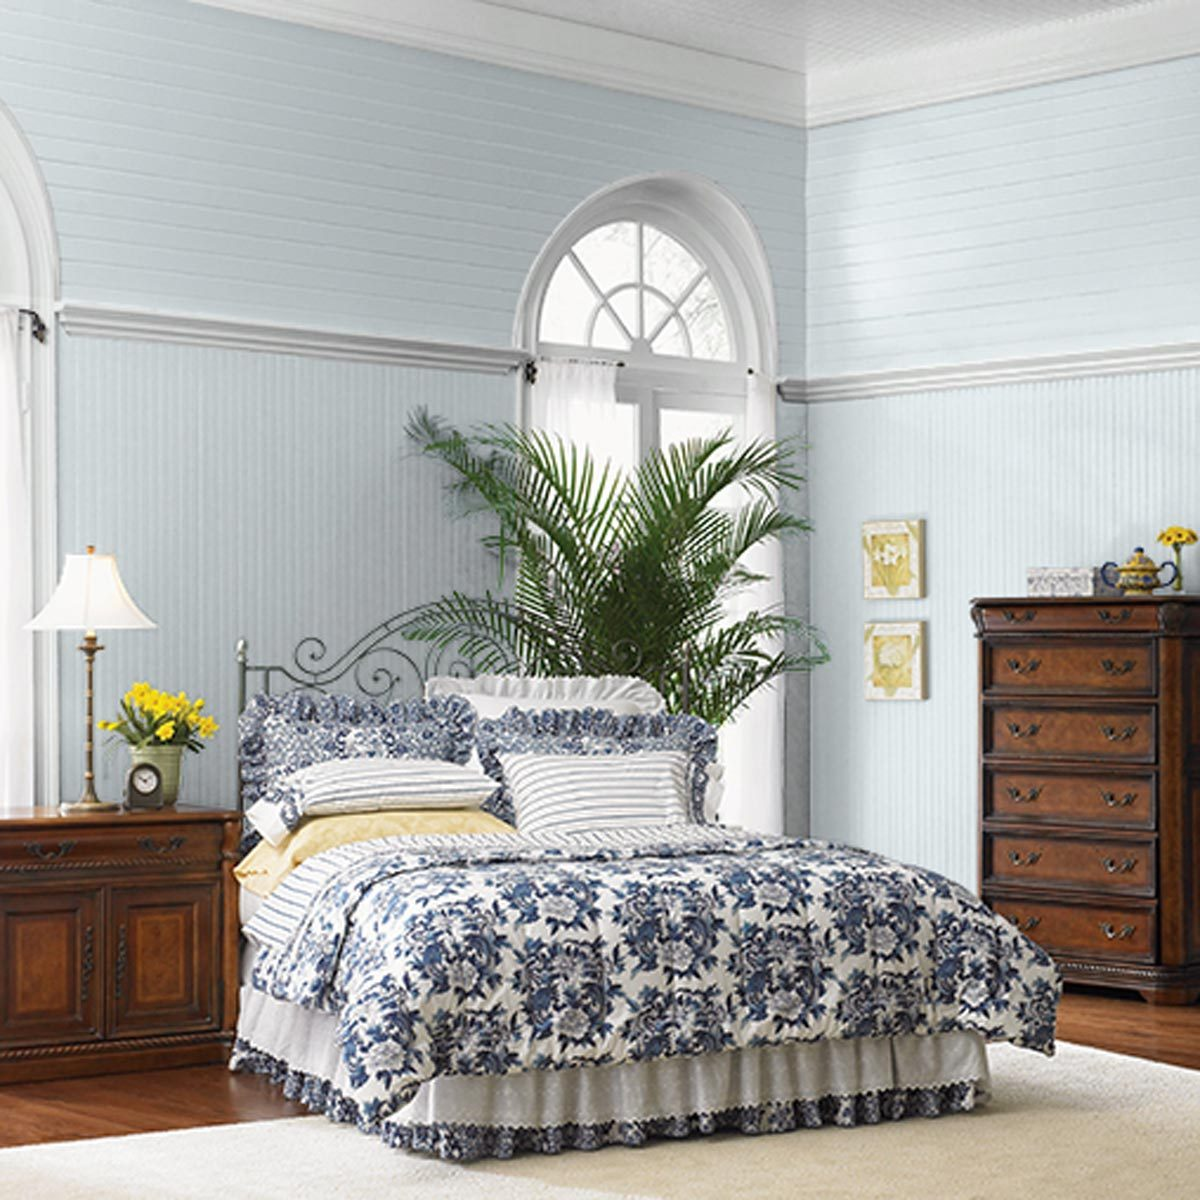 behr paint color soothing decorating bedroom